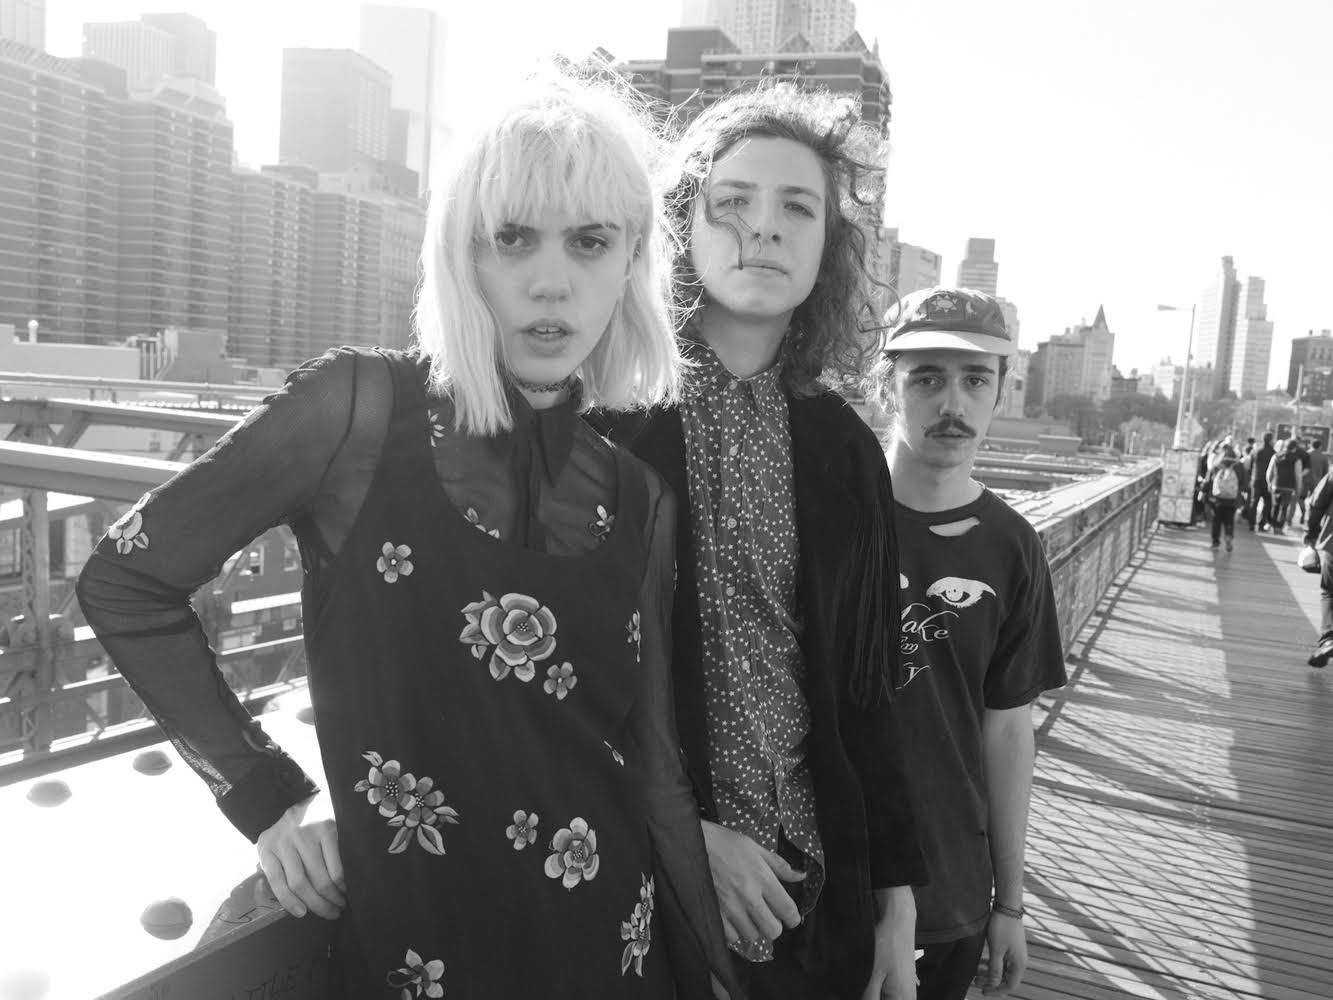 My favorite young band today is Sunflower Bean. So young and full of promise. They make cool records, put on a great show and are so photogenic. Nick looks just like a young Bob Dylan!  We first met a couple of years ago in lower Manhattan. I showed them the financial district and the New York Stock Exchange. Eventually we headed over to City Hall and then to the Brooklyn Bridge. We stood on the bridge, in the center of the earth, and I took this photograph. I have shot them numerous times since and we always reflect on this moment.